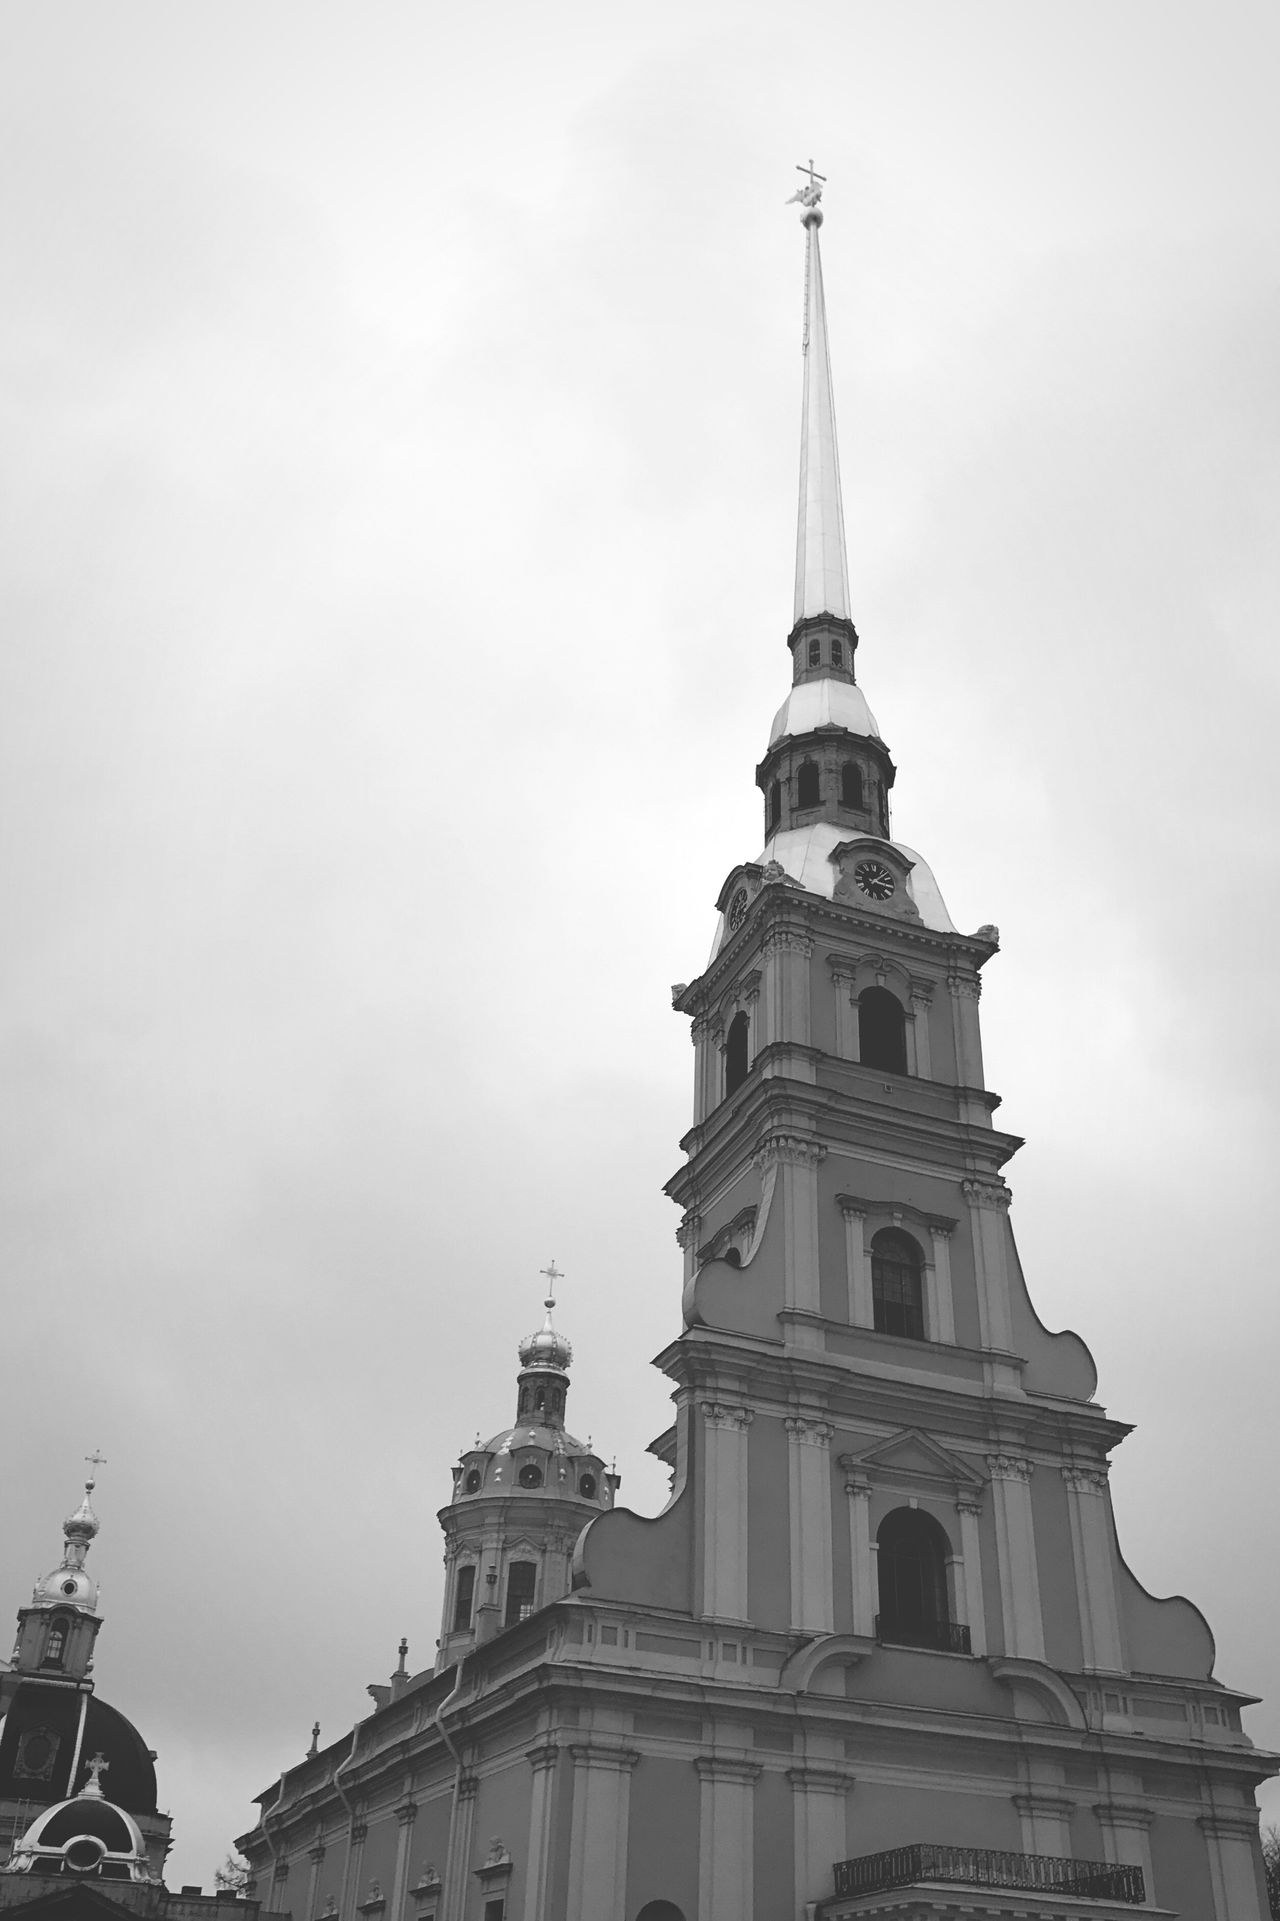 St. PETERSBURG Russia Peter-Pavel's Fortress Peter And Paul Cathedral History Architecture